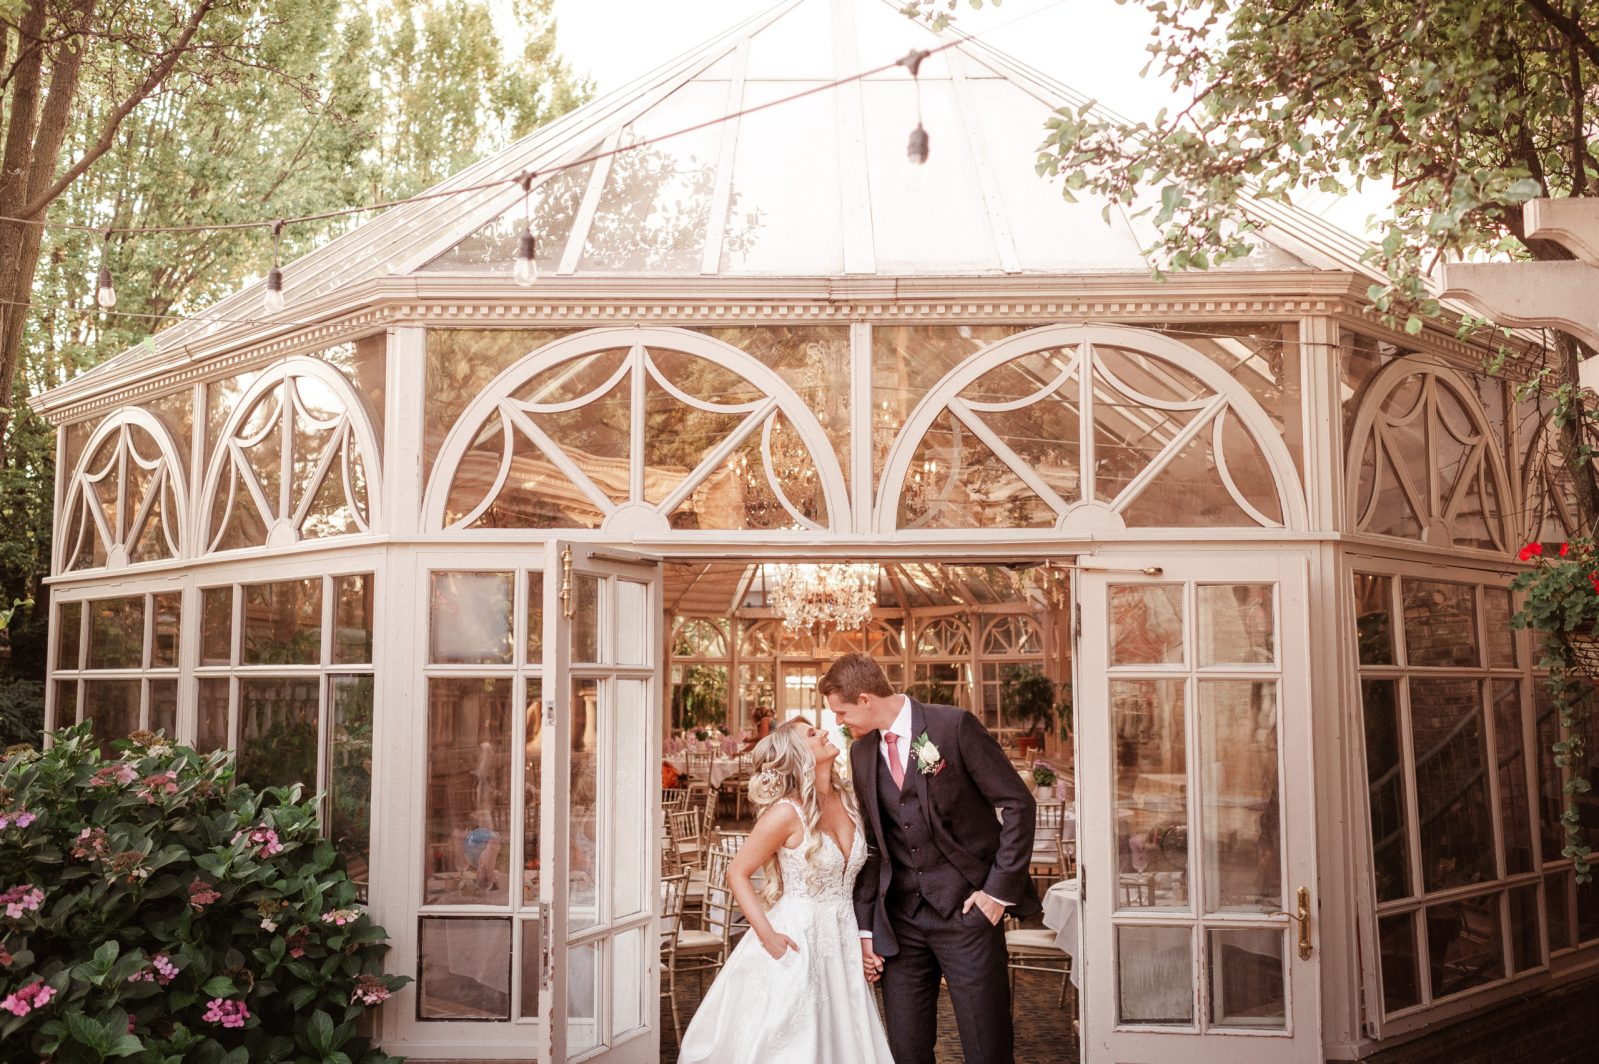 fairytale-wedding-venue-new-jersey-wedding-photos-at-brownstone-by-suess-moments